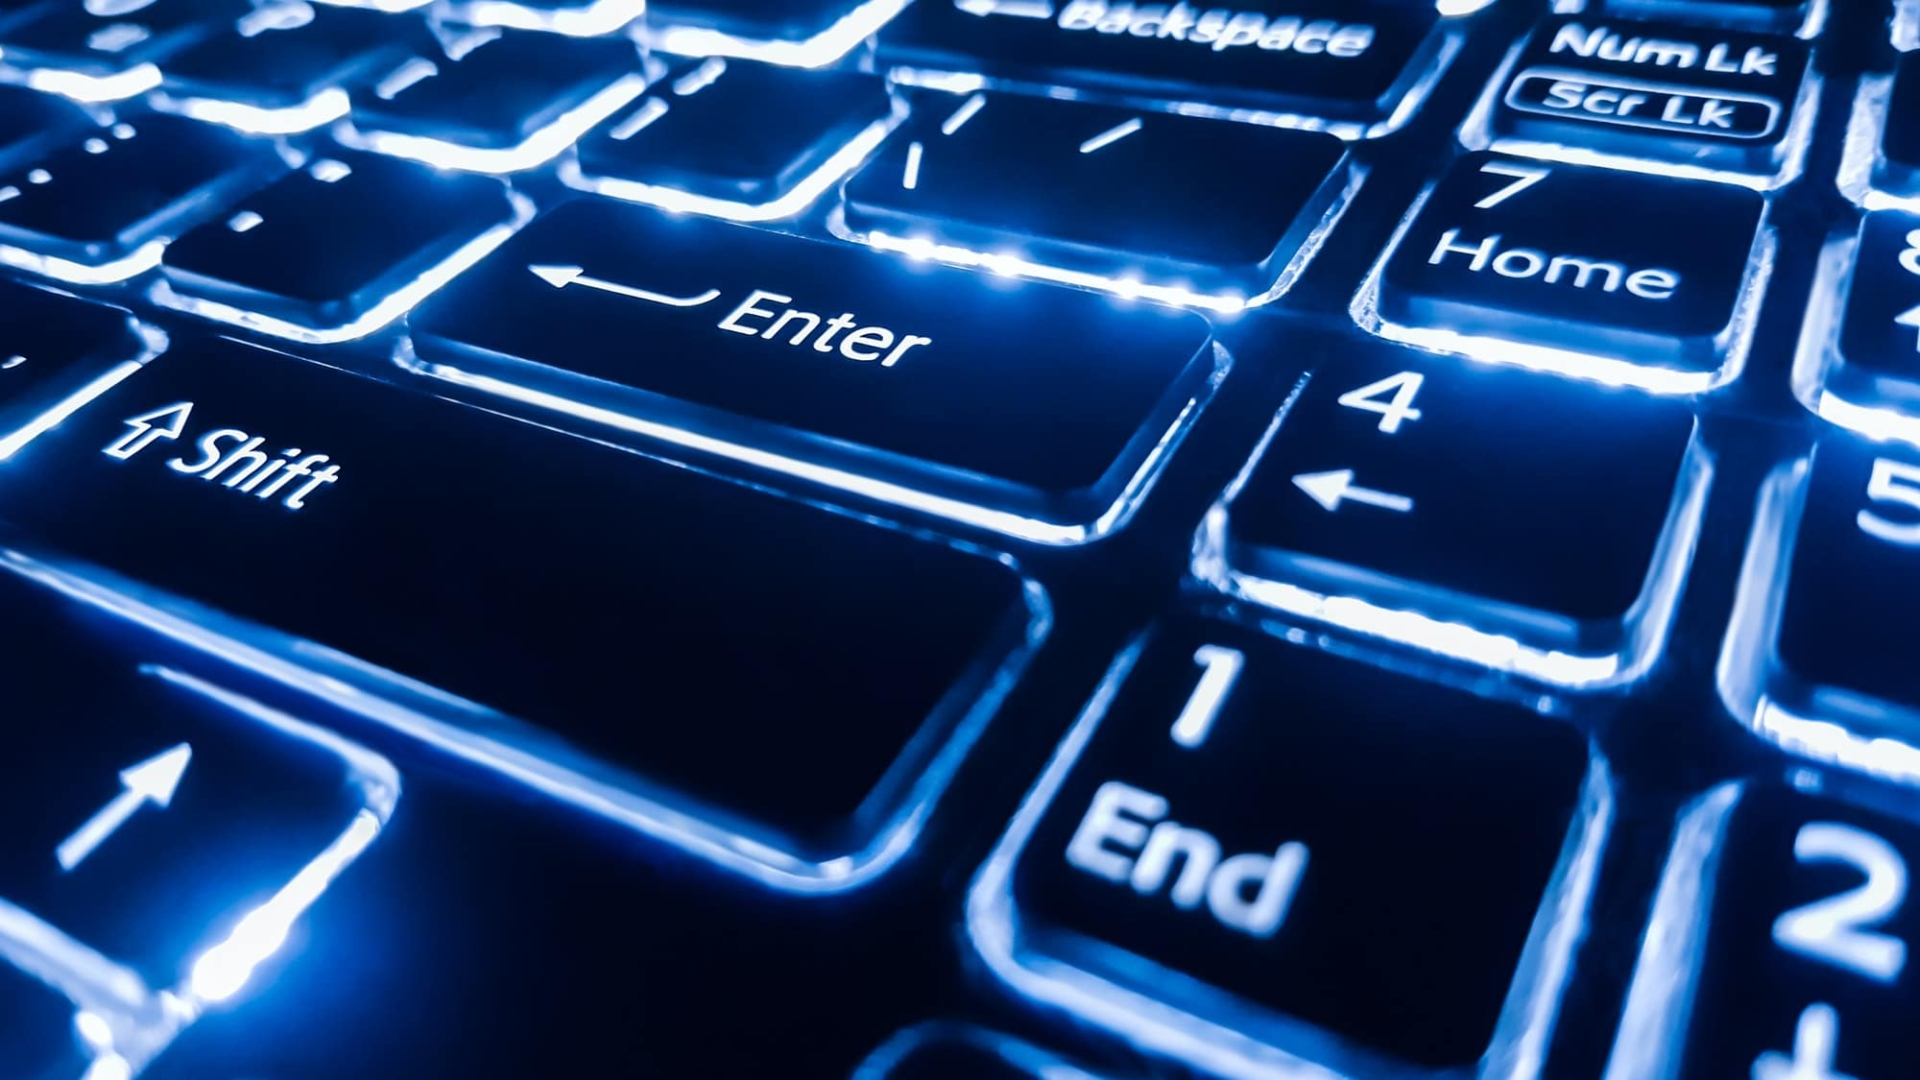 Neon keyboard with enter button. Focus on the .